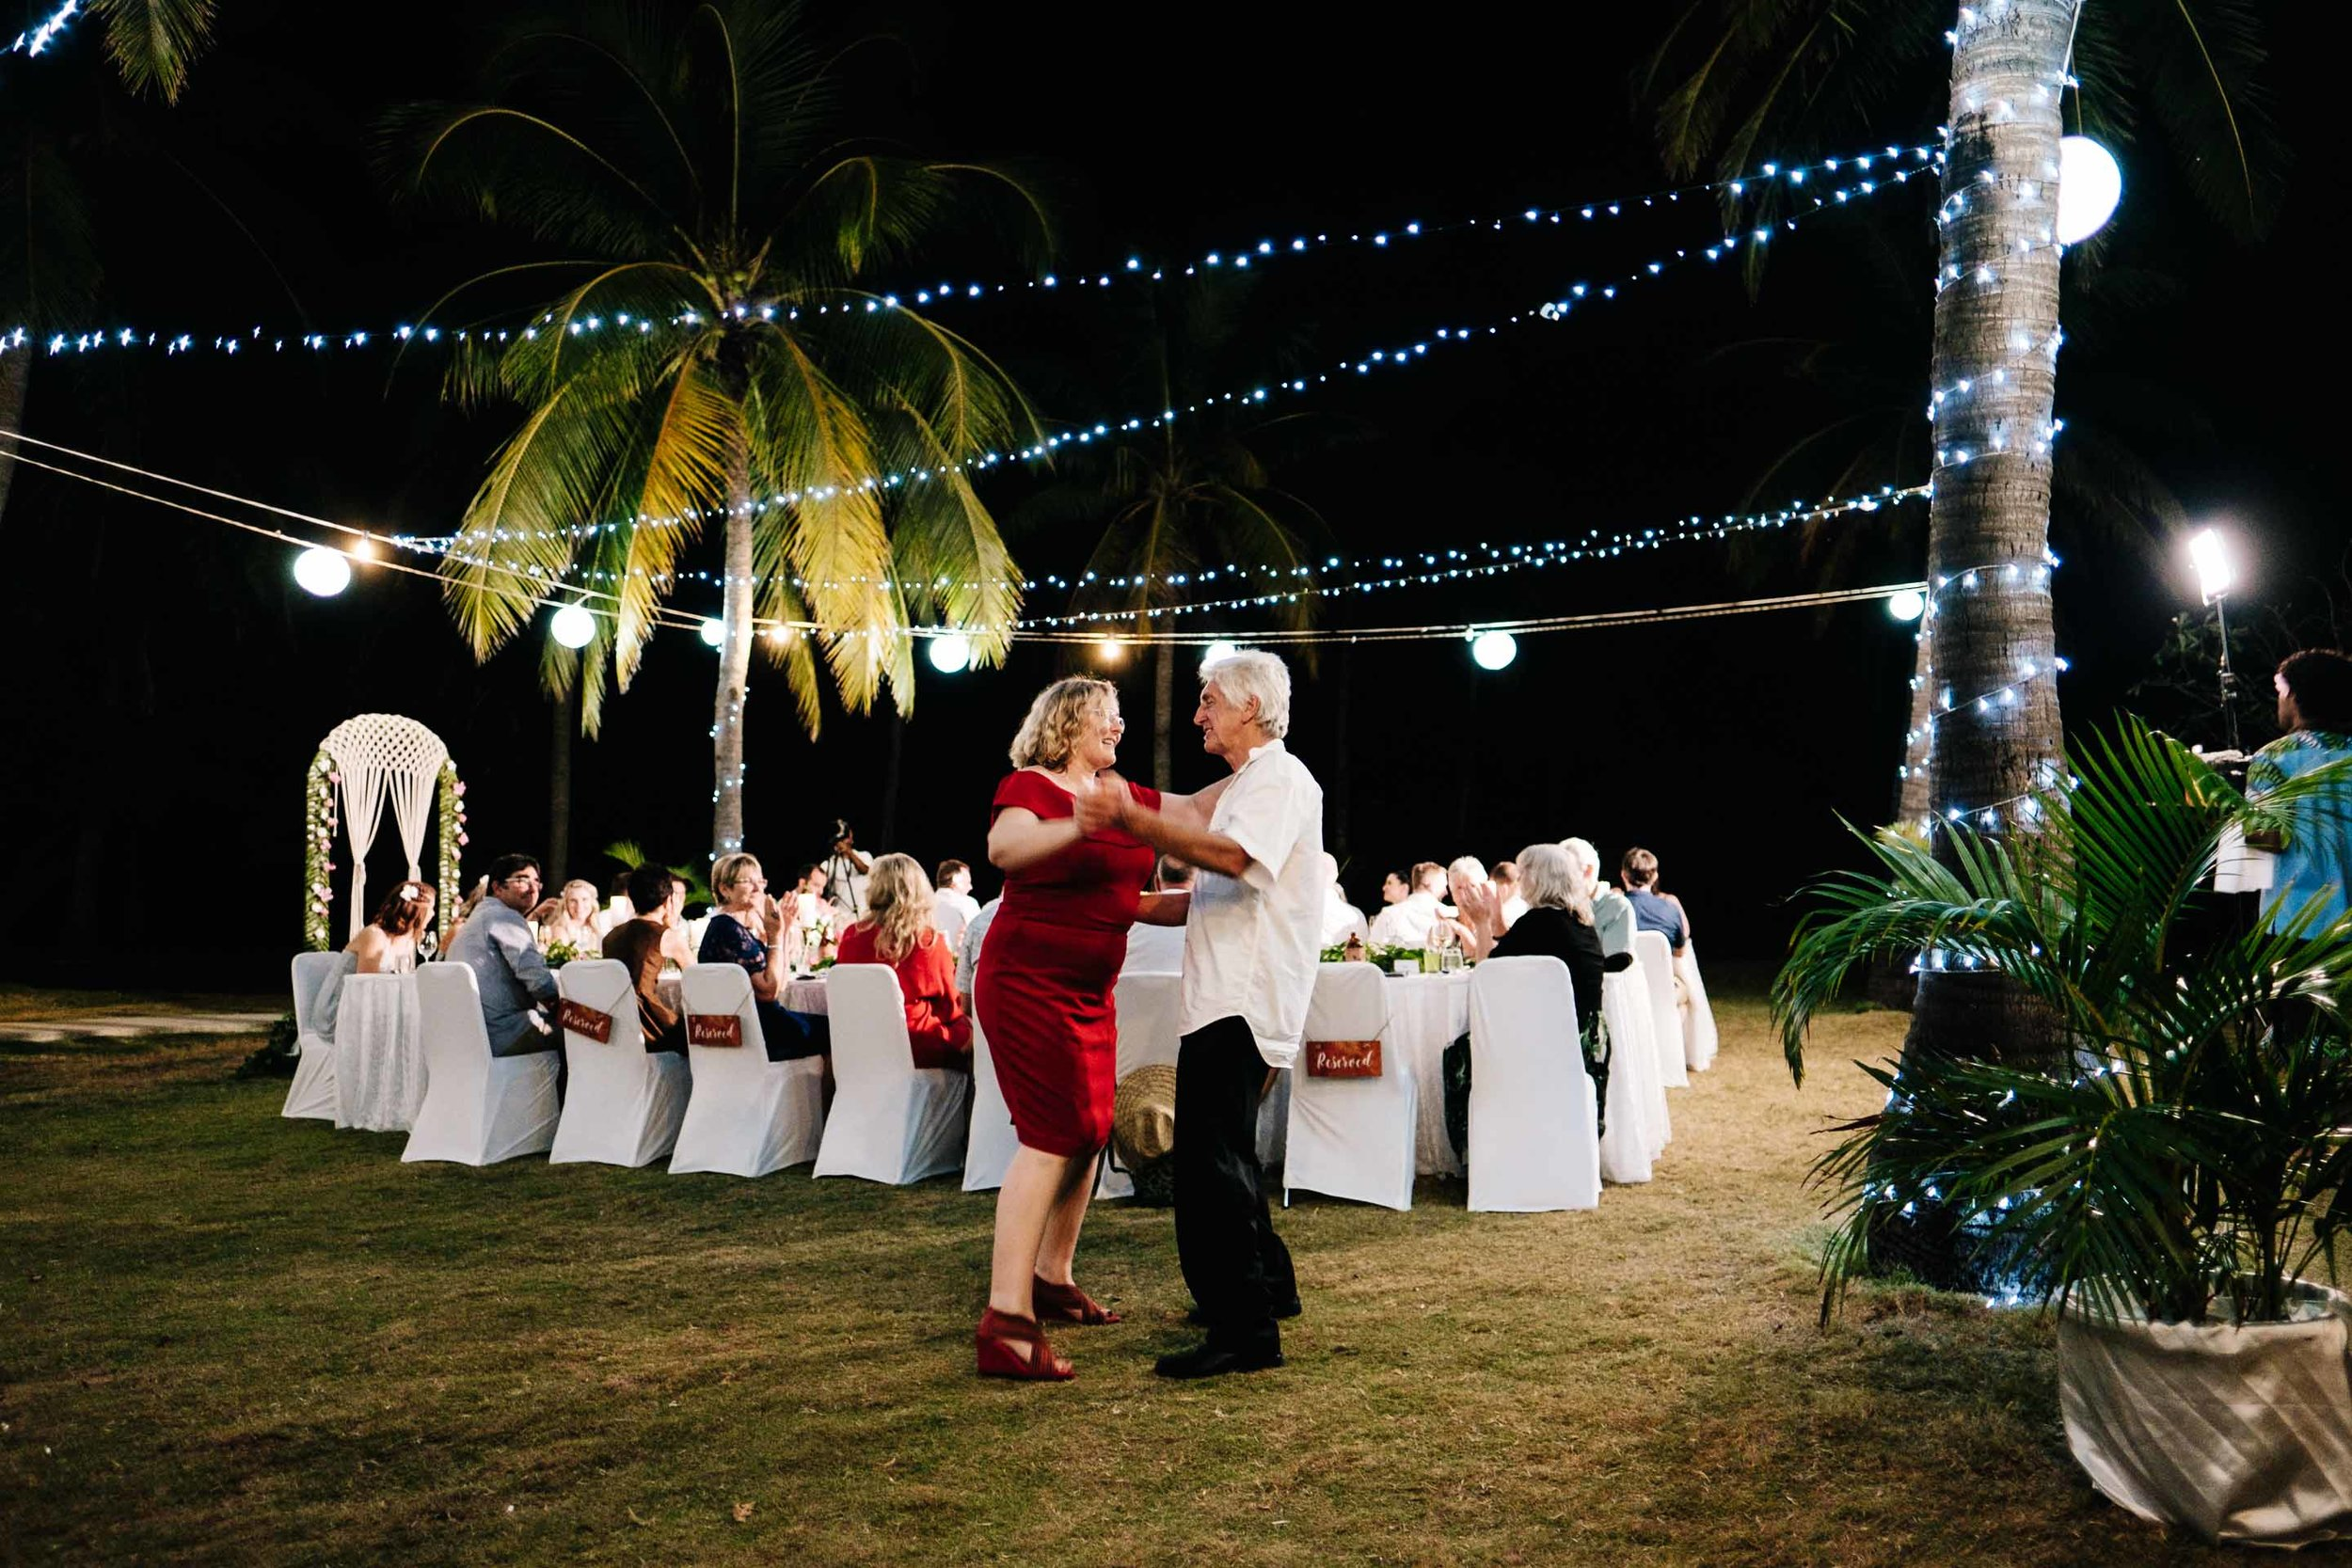 guests dancing at the outdoor reception under the stars and fairy lights